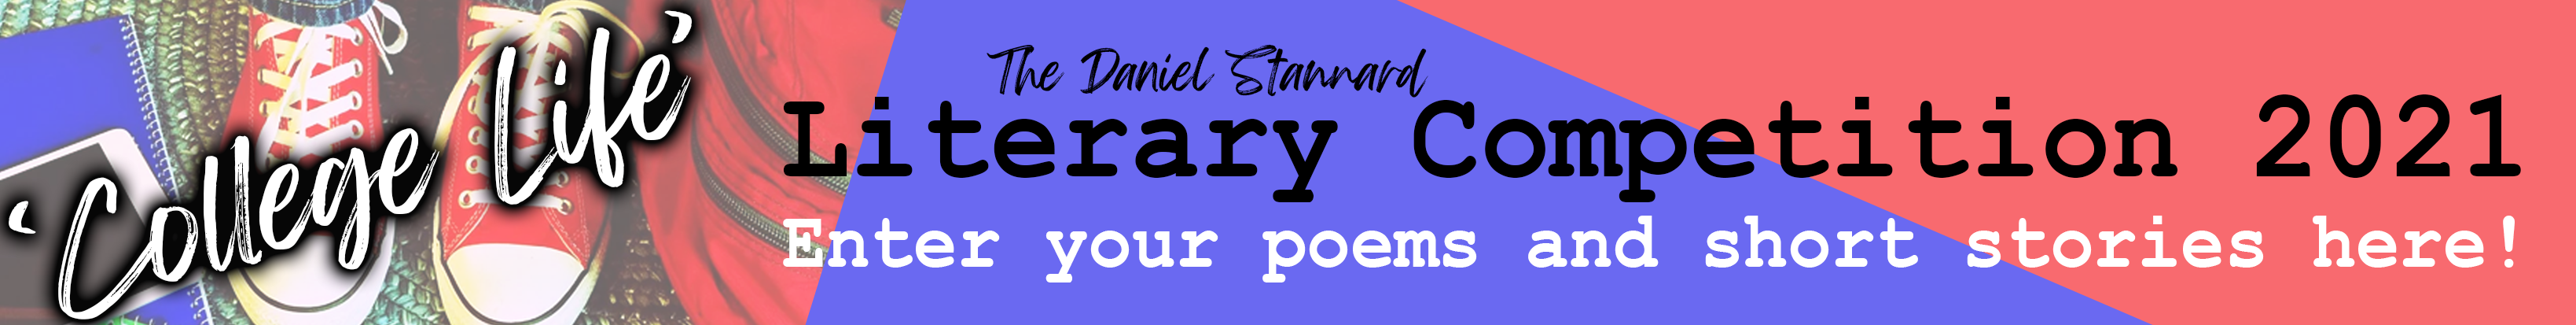 Literary Competition 2021 - Enter your poems and short stories here!